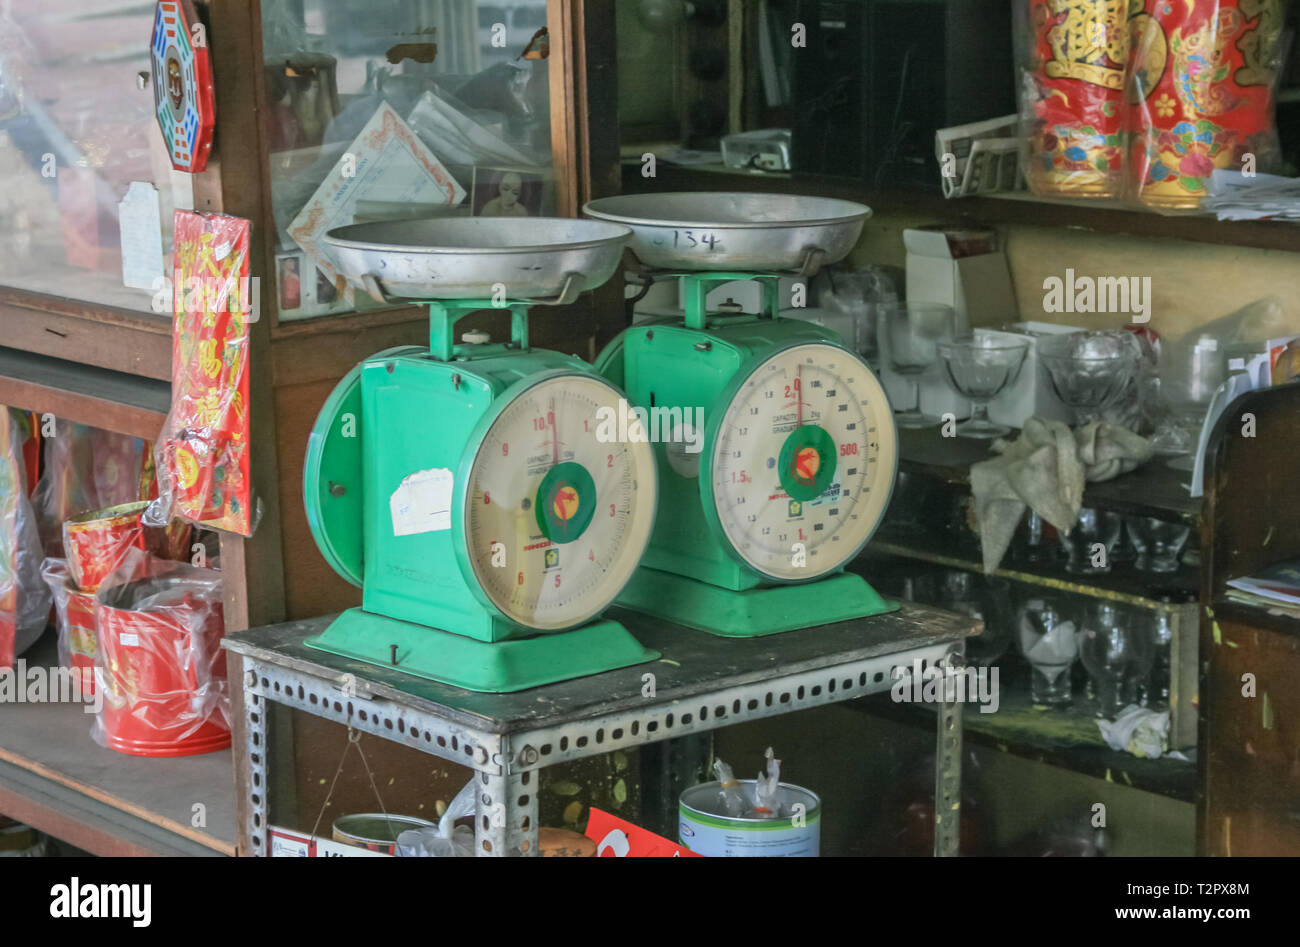 Two weighing scales in a Chinese shophouse, Johor Bahru, Malaysia - Stock Image